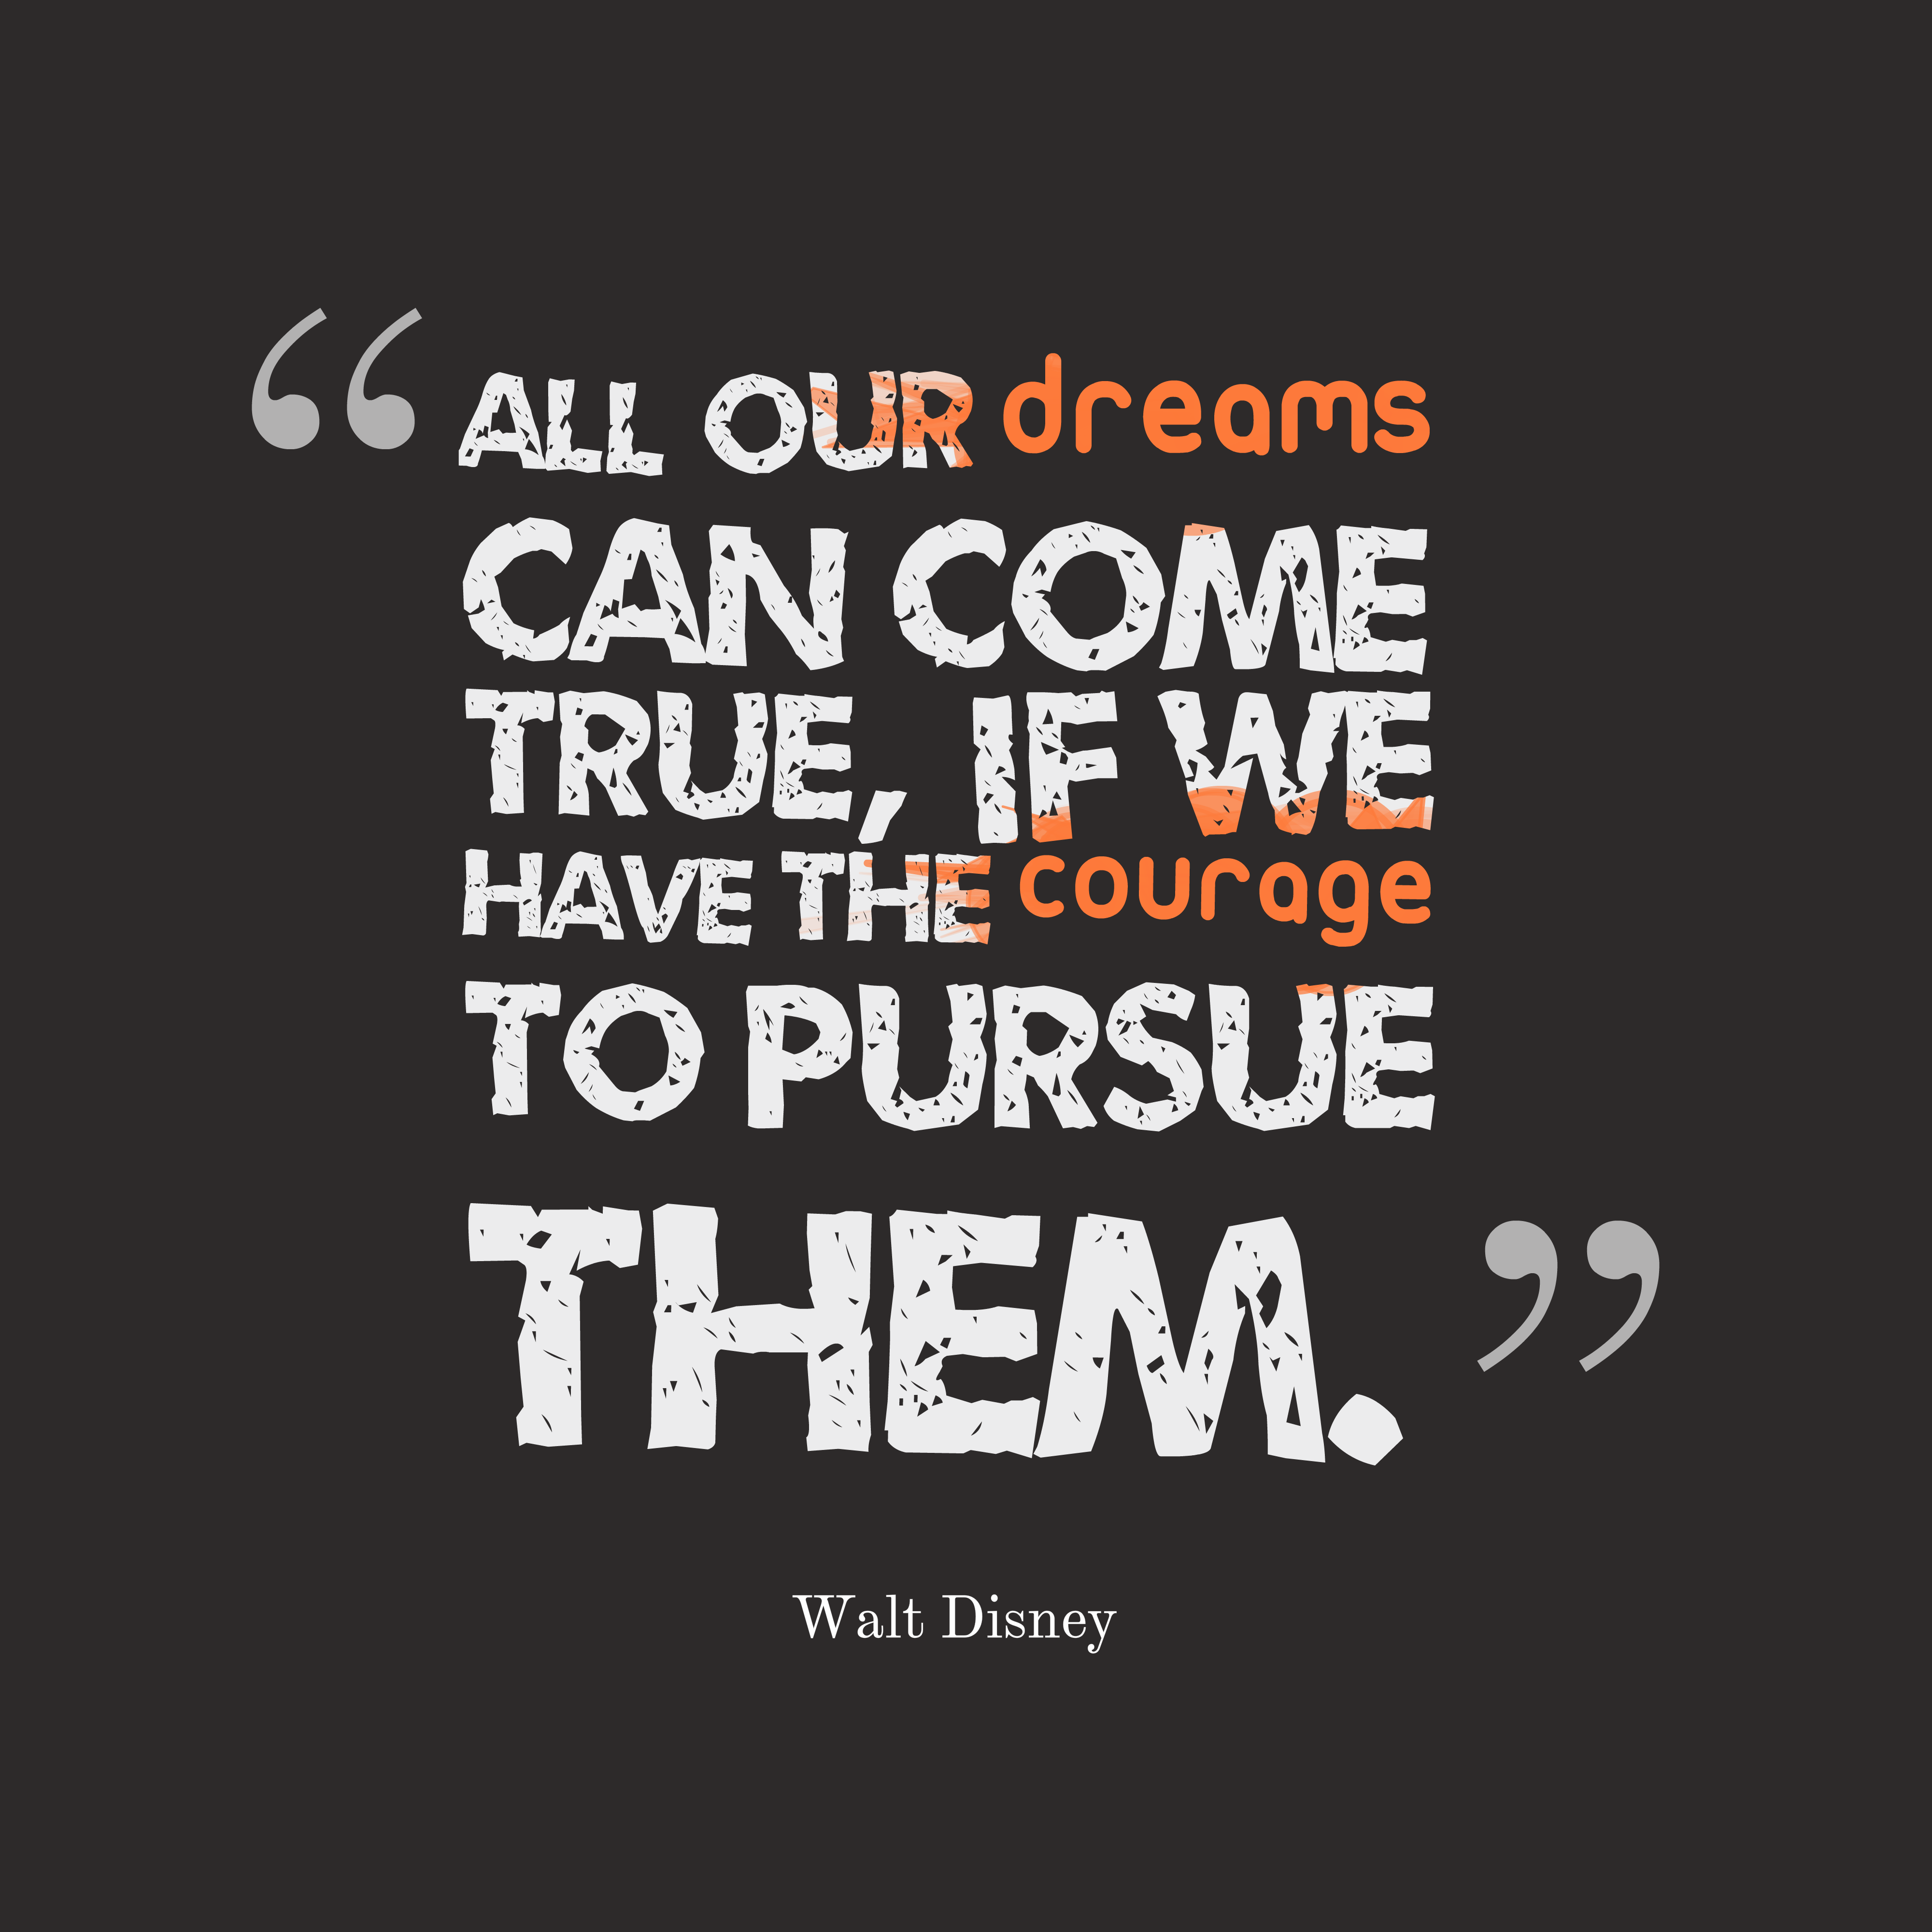 All-our-dreams-can-come__quotes-by-Walt-Disney-64